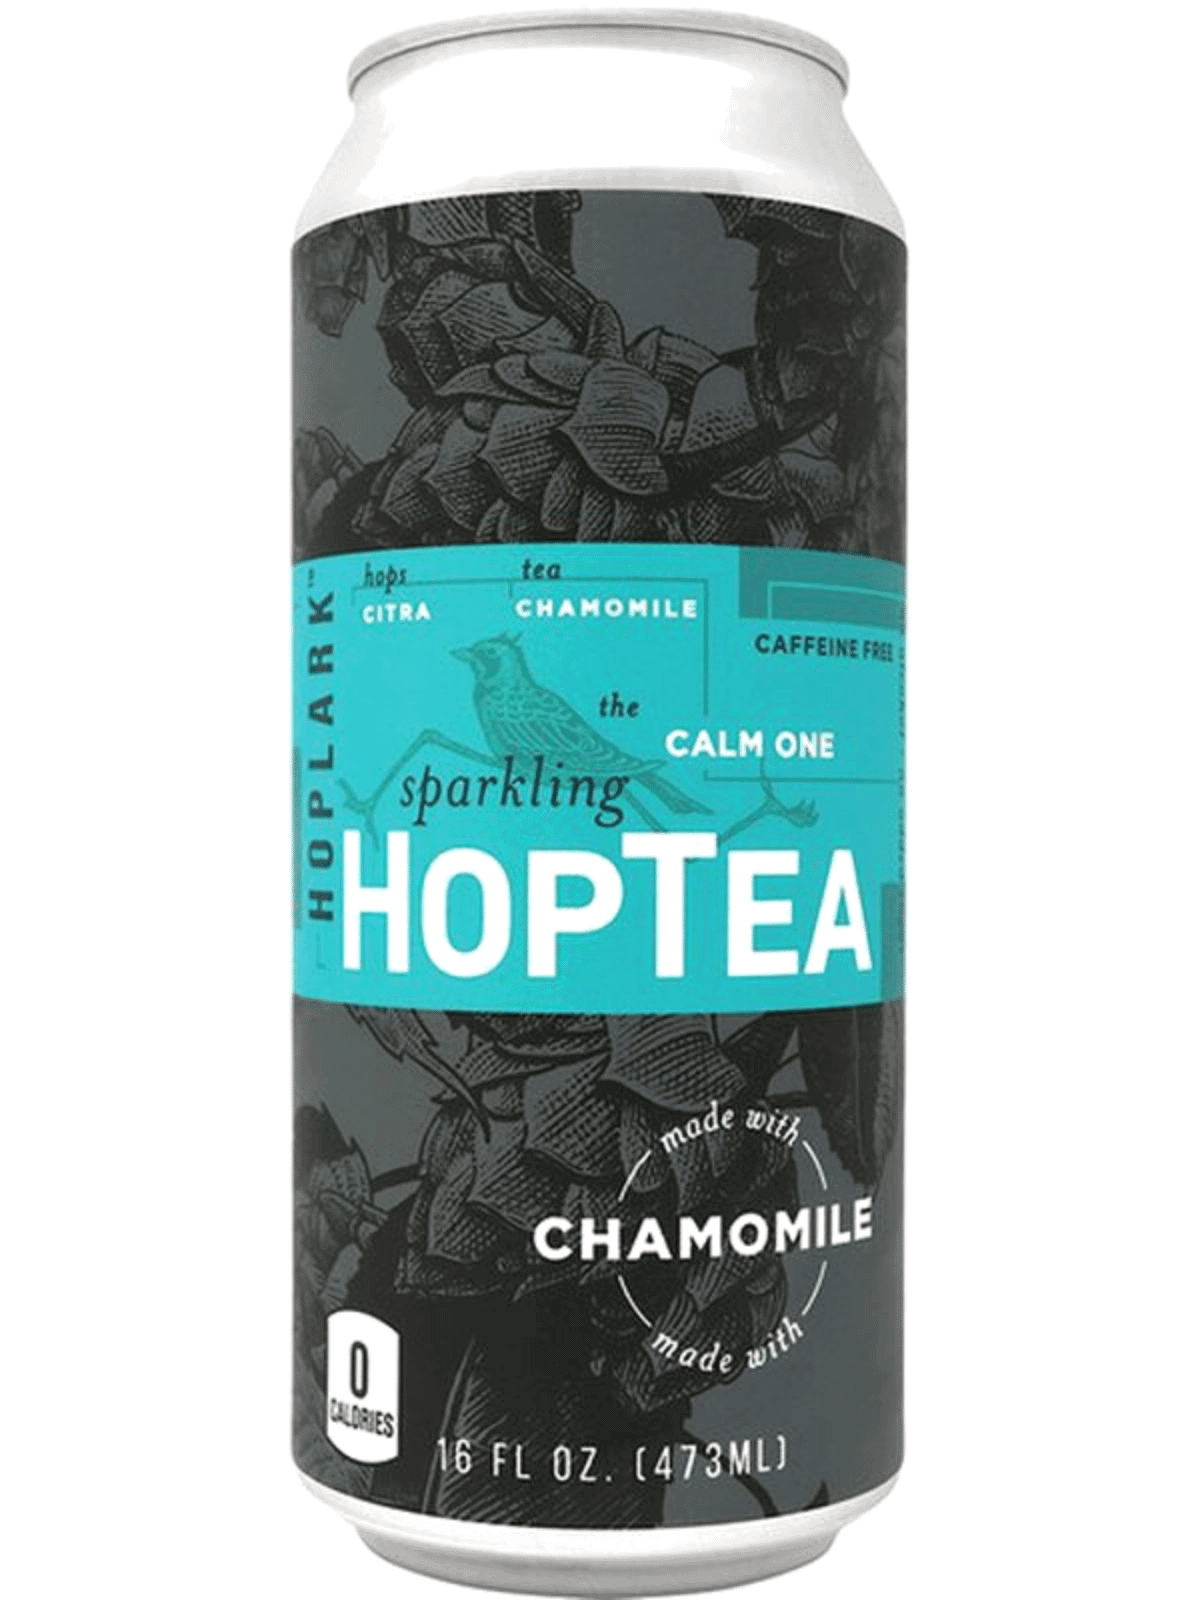 Can of hop tea on white background